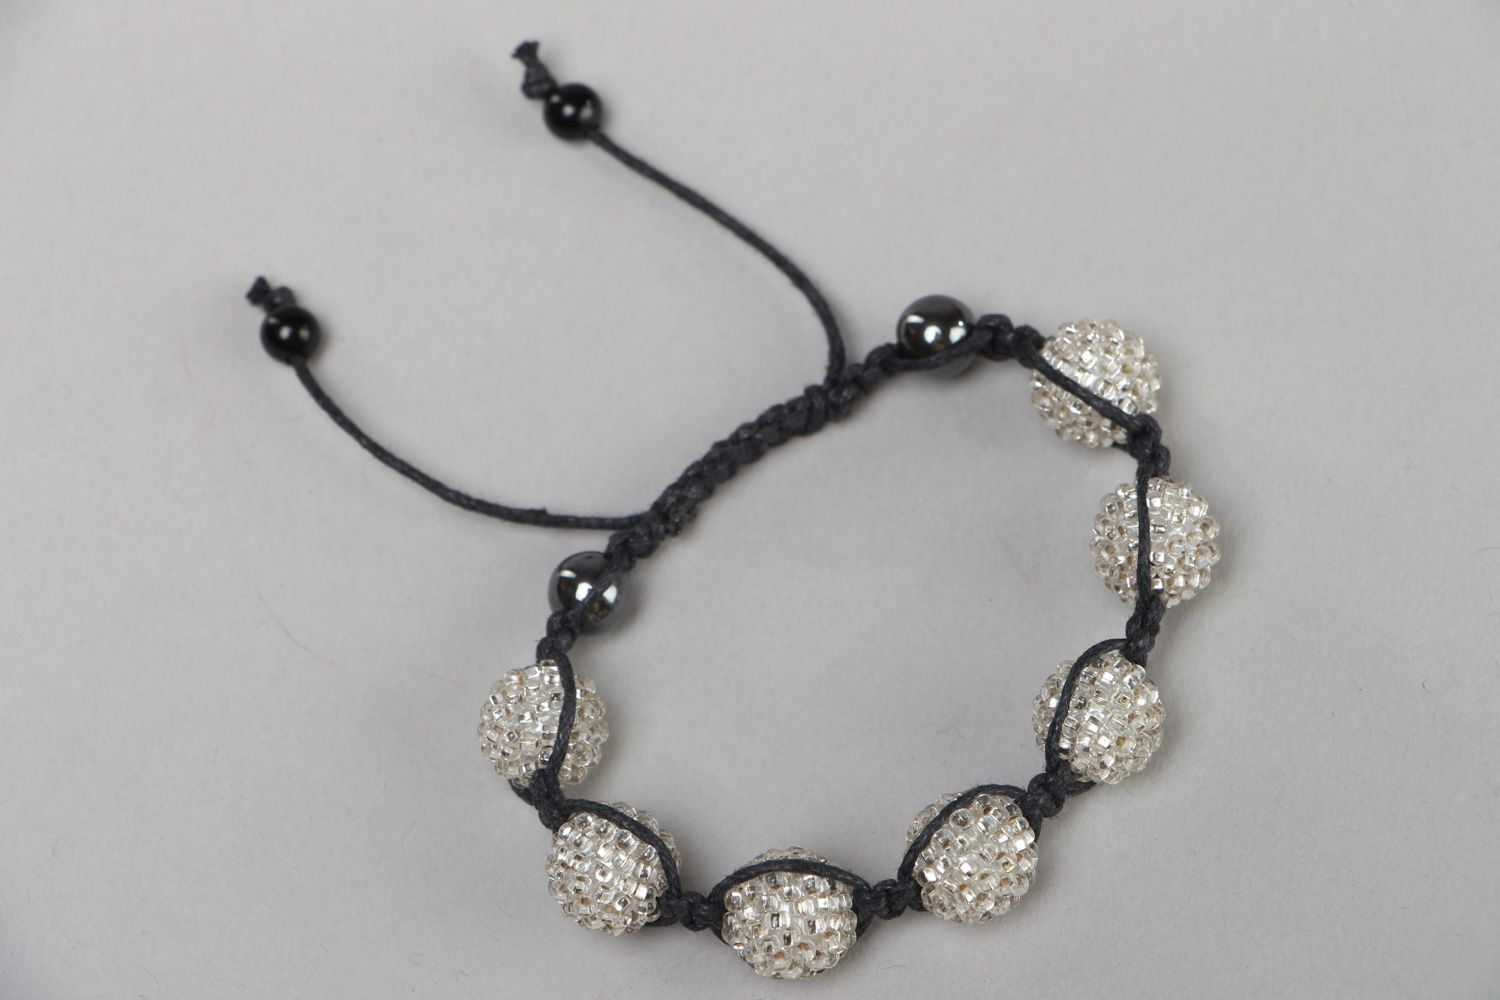 Handmade black and white friendship bracelet woven of waxed cord and beads  photo 2